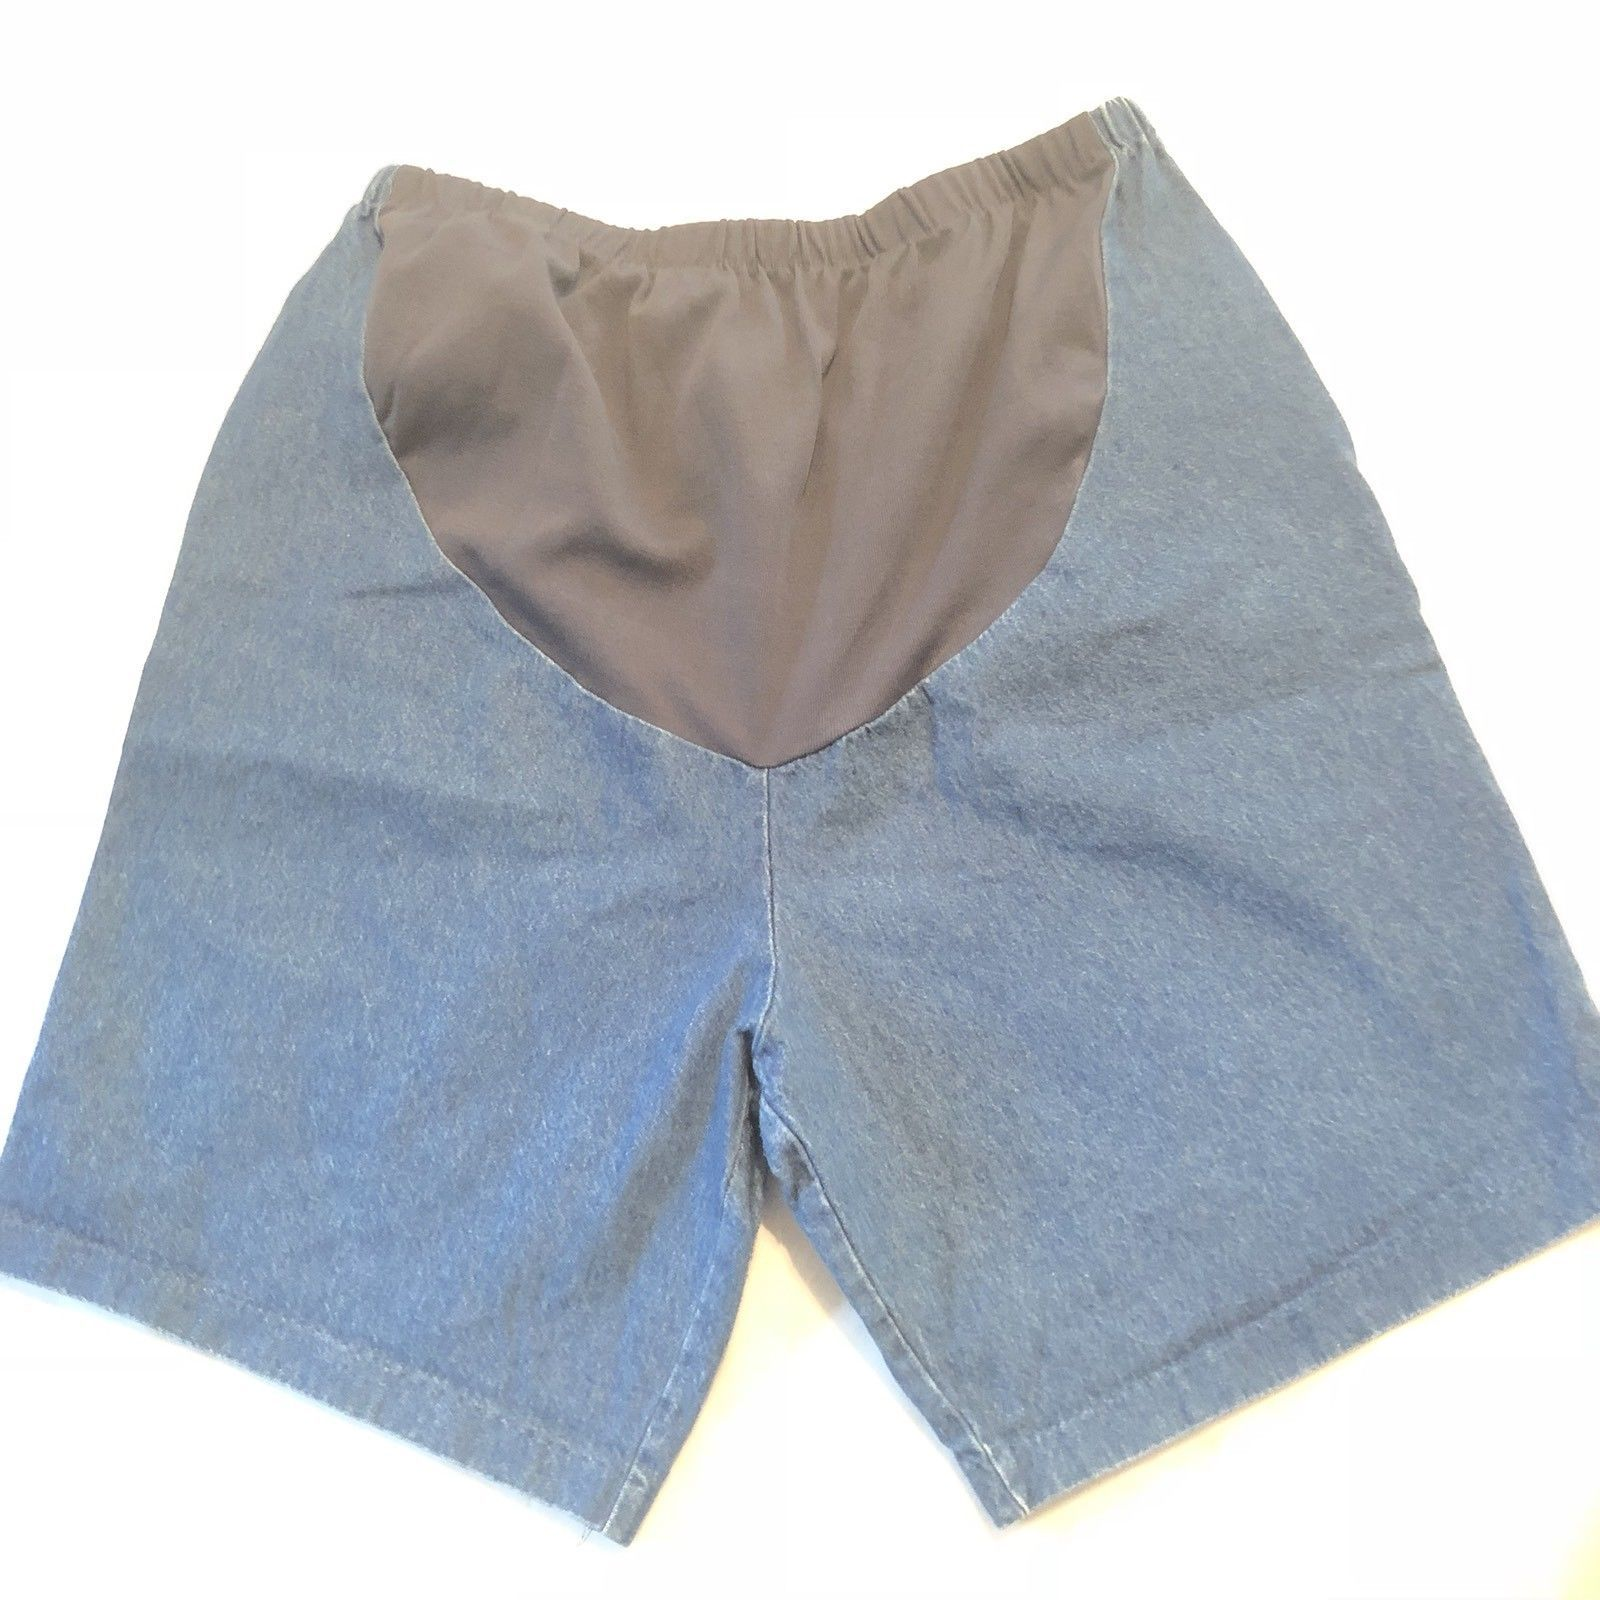 a76a8f8ecebe1 New Additions Maternity Shorts Size 10 Denim and 50 similar items